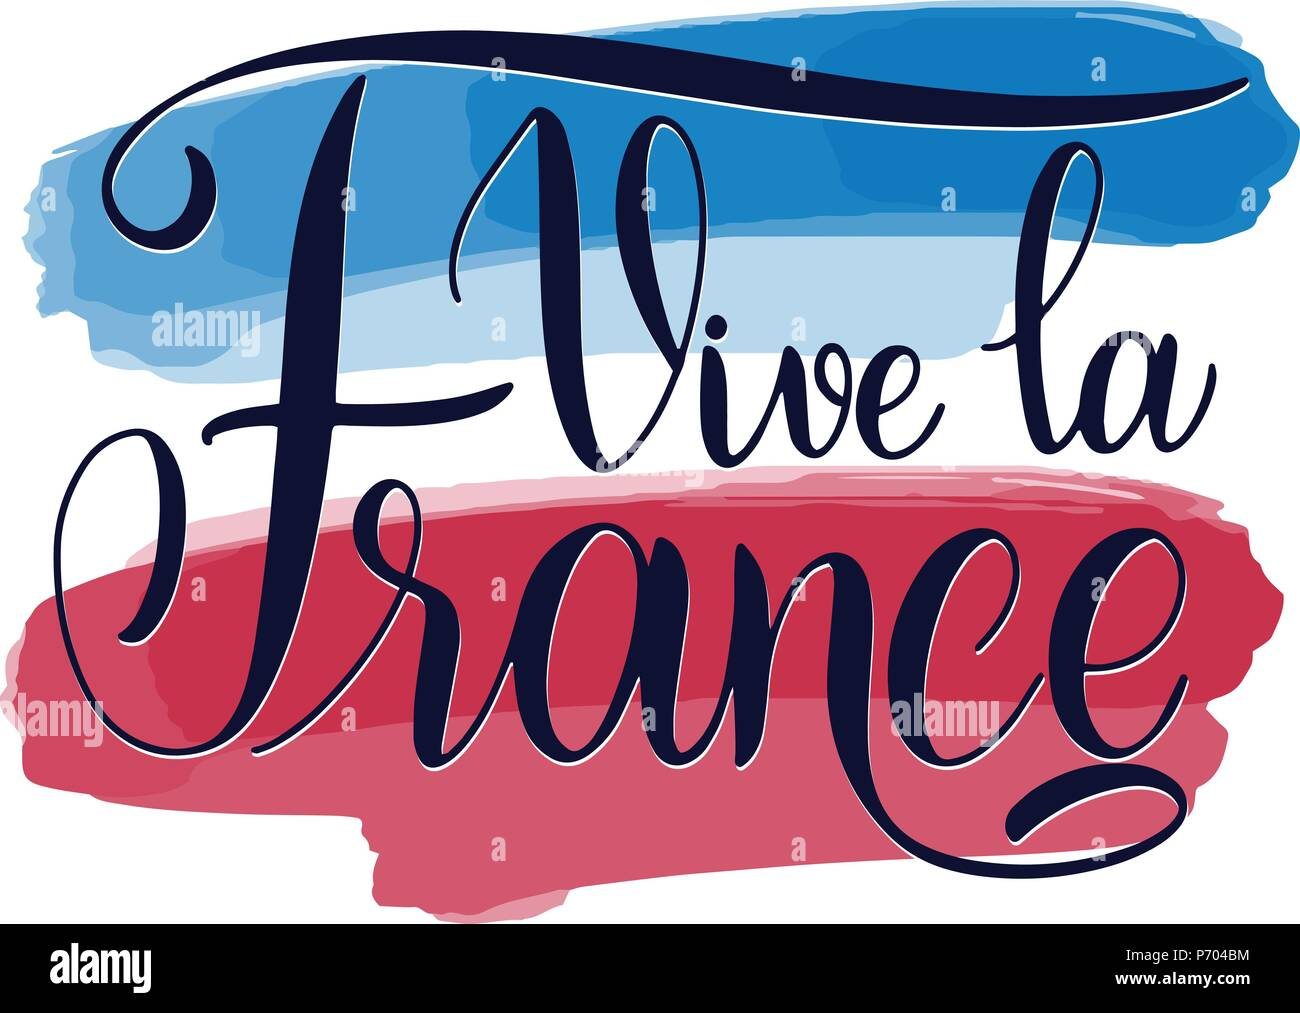 Bastille day hand drawn lettering long live france on french vive bastille day hand drawn lettering long live france on french vive la france vector elements for invitations posters greeting cards t shirt design m4hsunfo